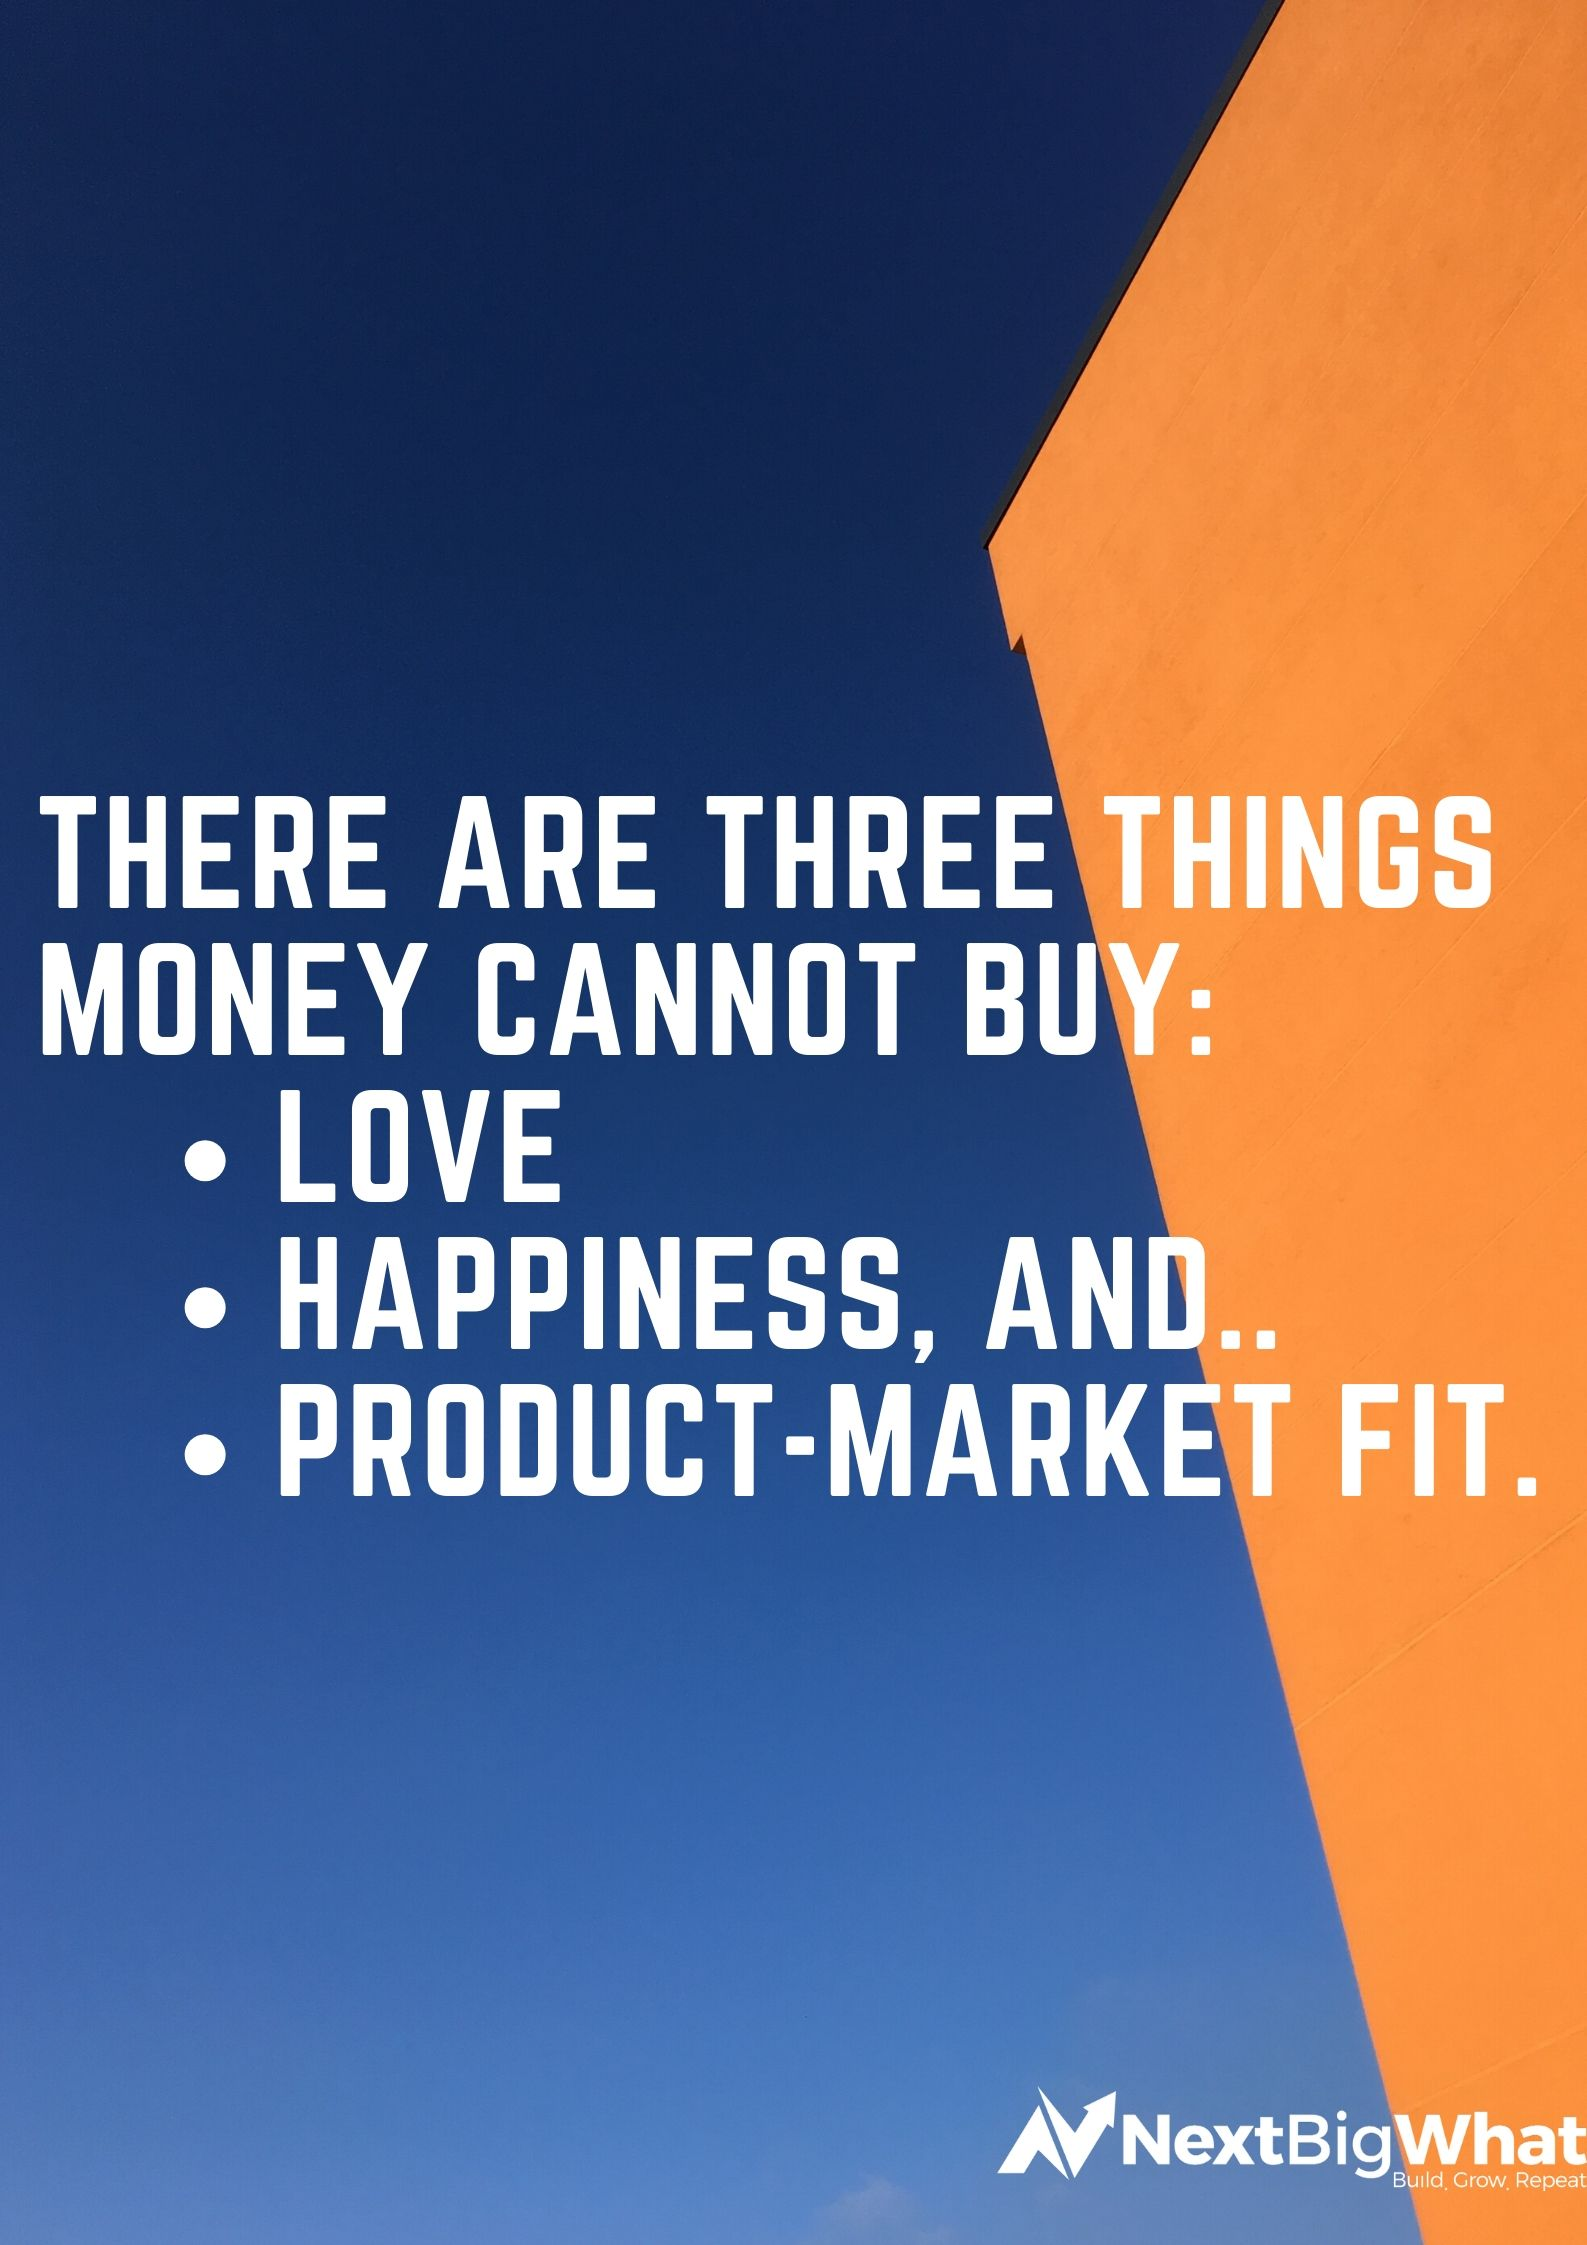 There are three things money cannot buy_ Love; Happiness, and Product-Market Fit.